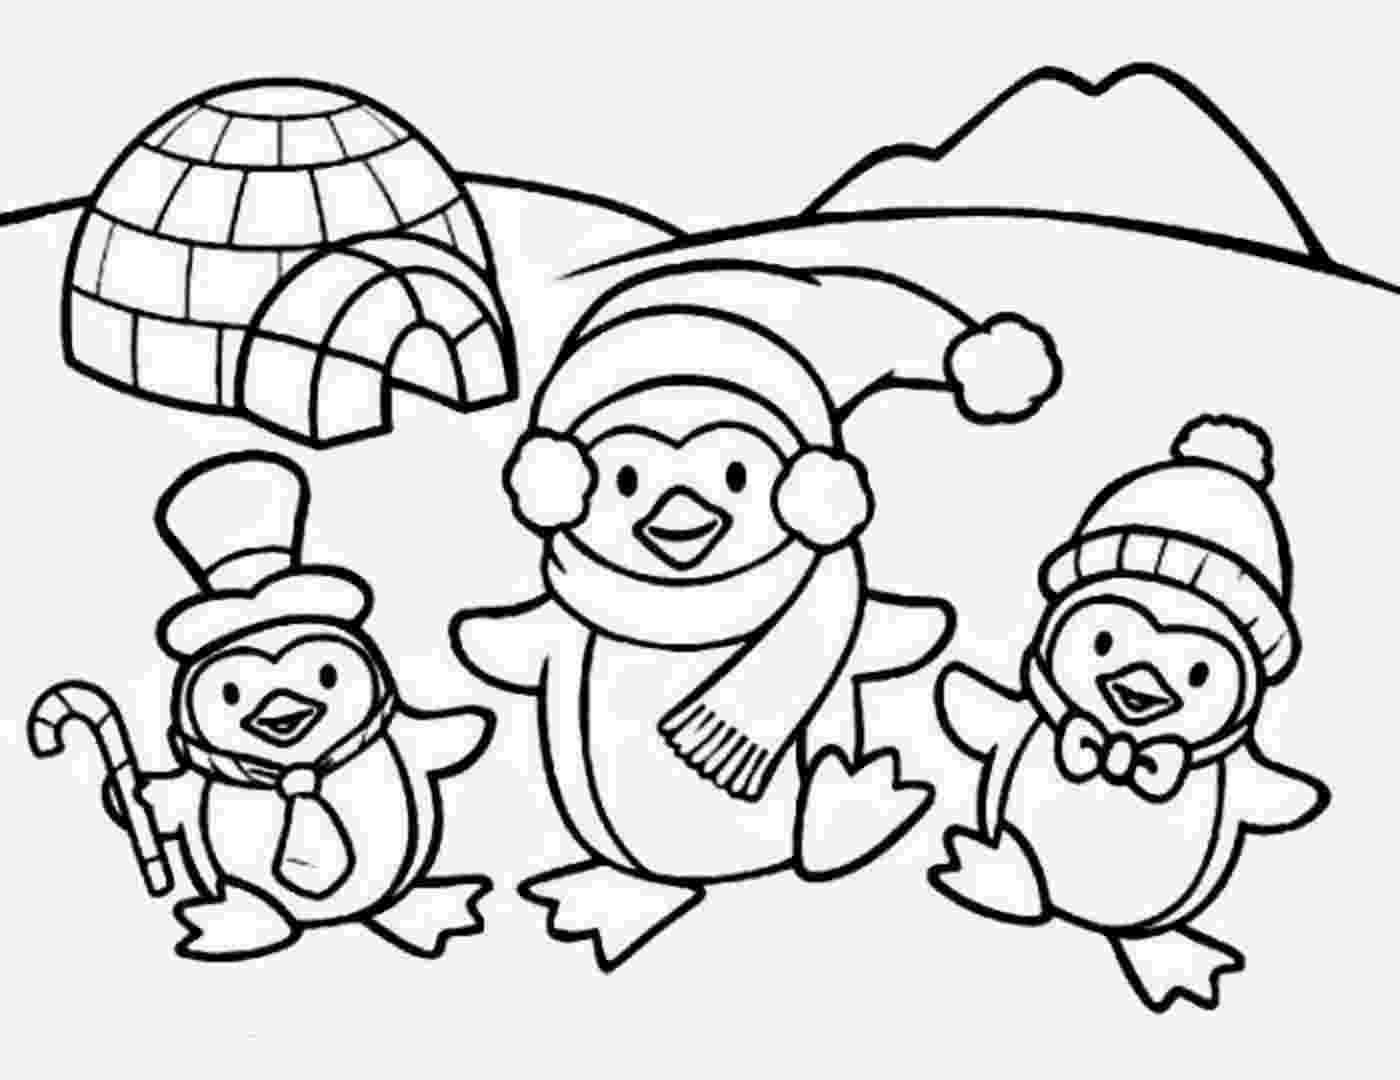 coloring page of penguin 8 cartoon coloring pages jpg ai illustrator download page penguin of coloring